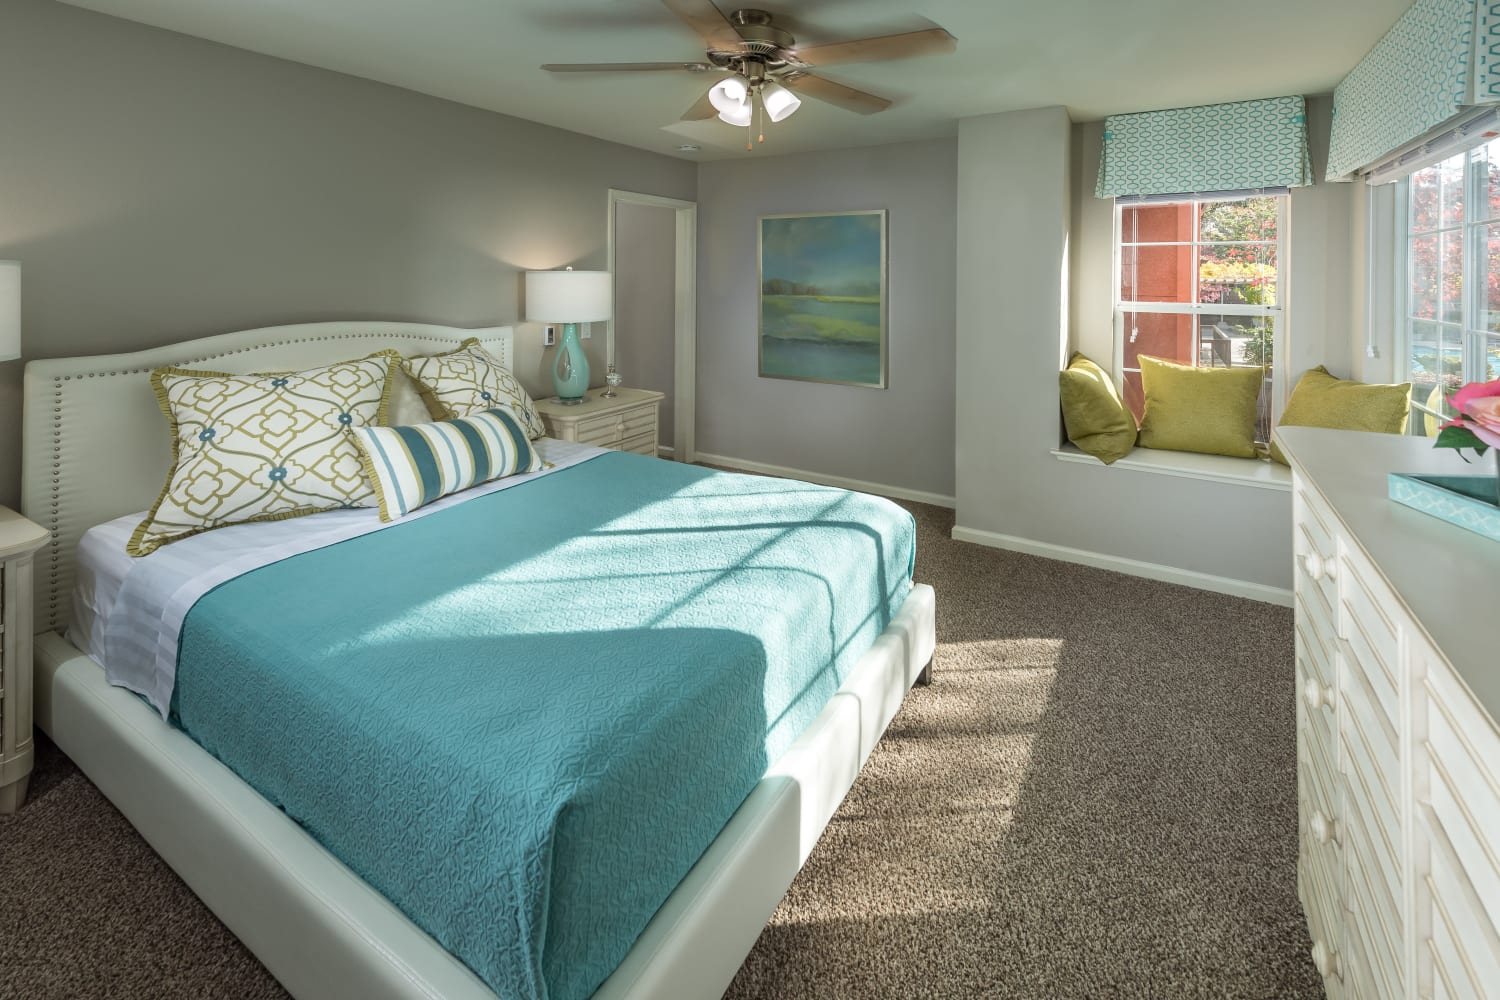 Large bedrooms at Bella Vista Apartments in Santa Clara, California